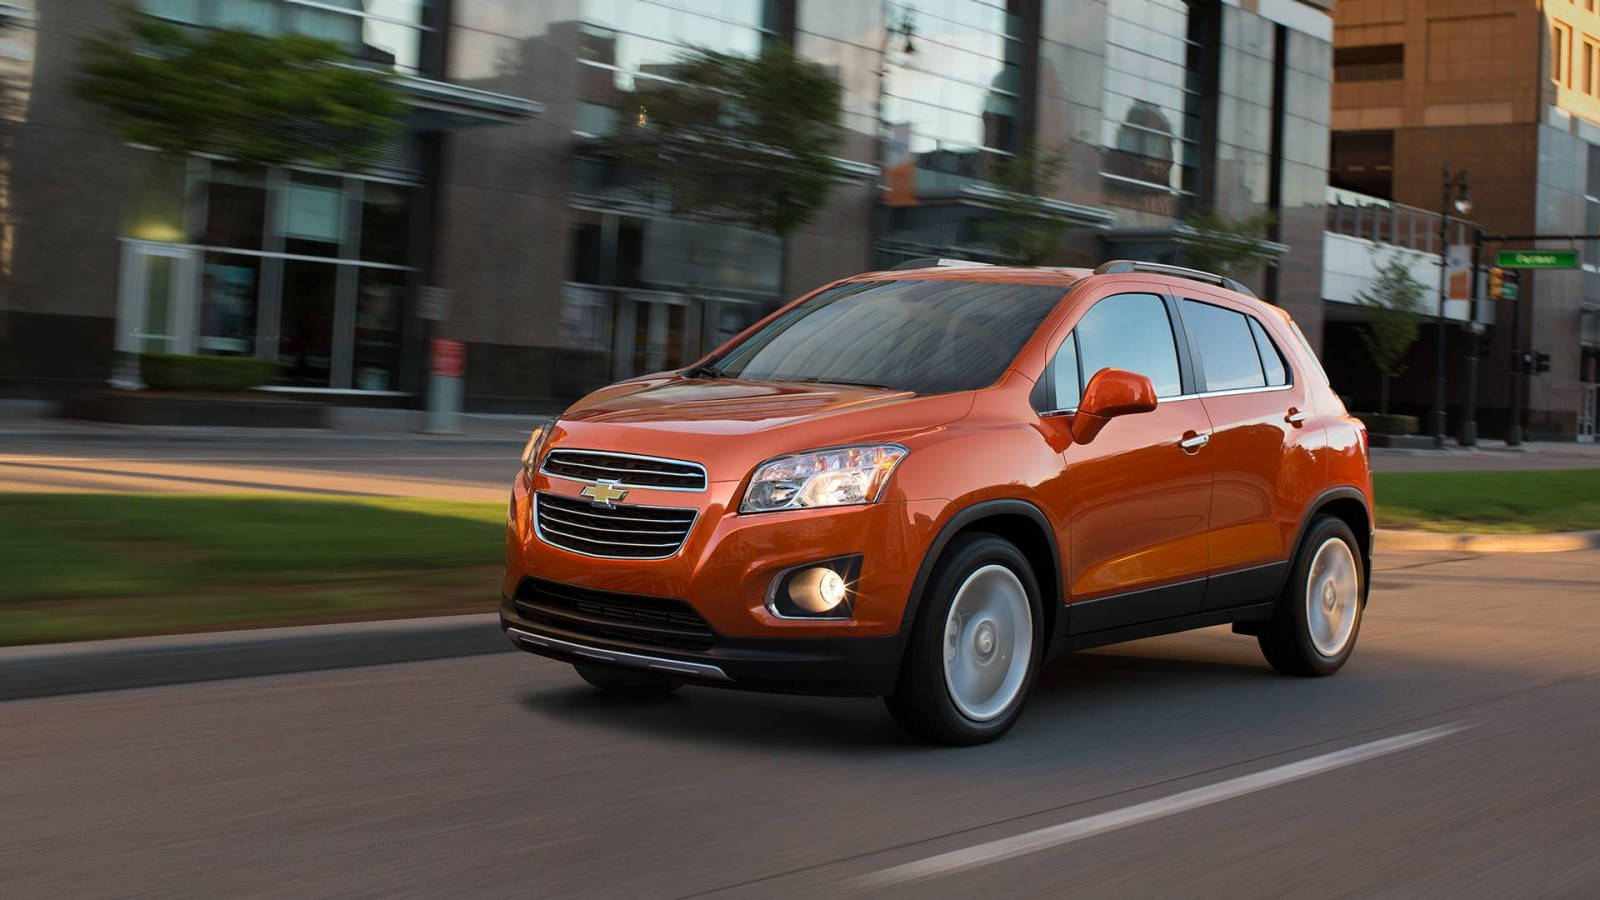 New Chevrolet Trax Exterior image 1